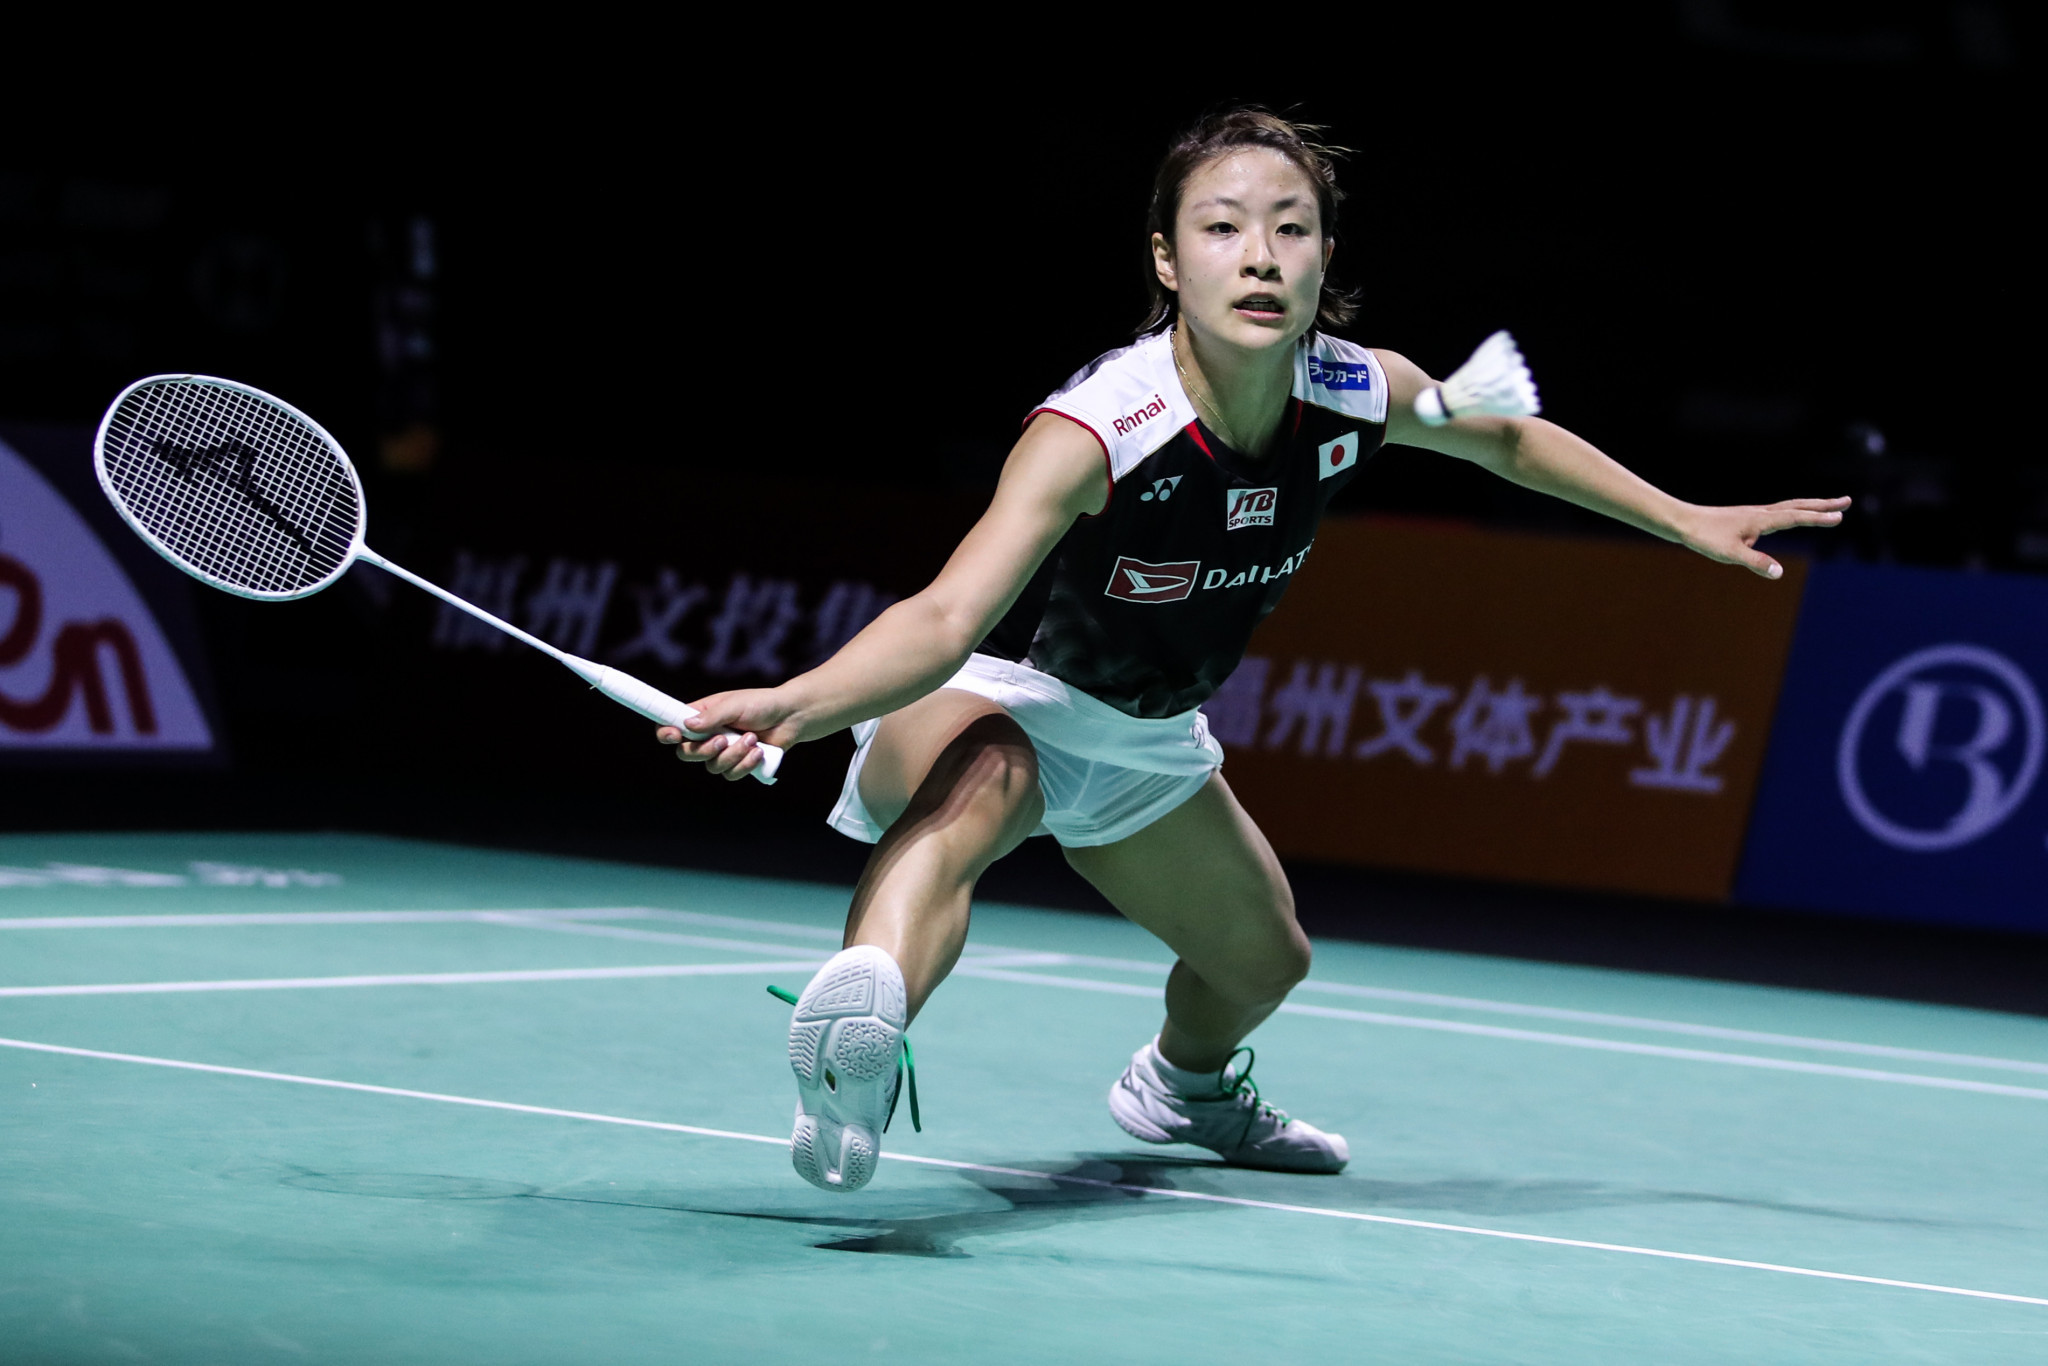 Nozomi Okuhara will contest the women's singles final ©Getty Images